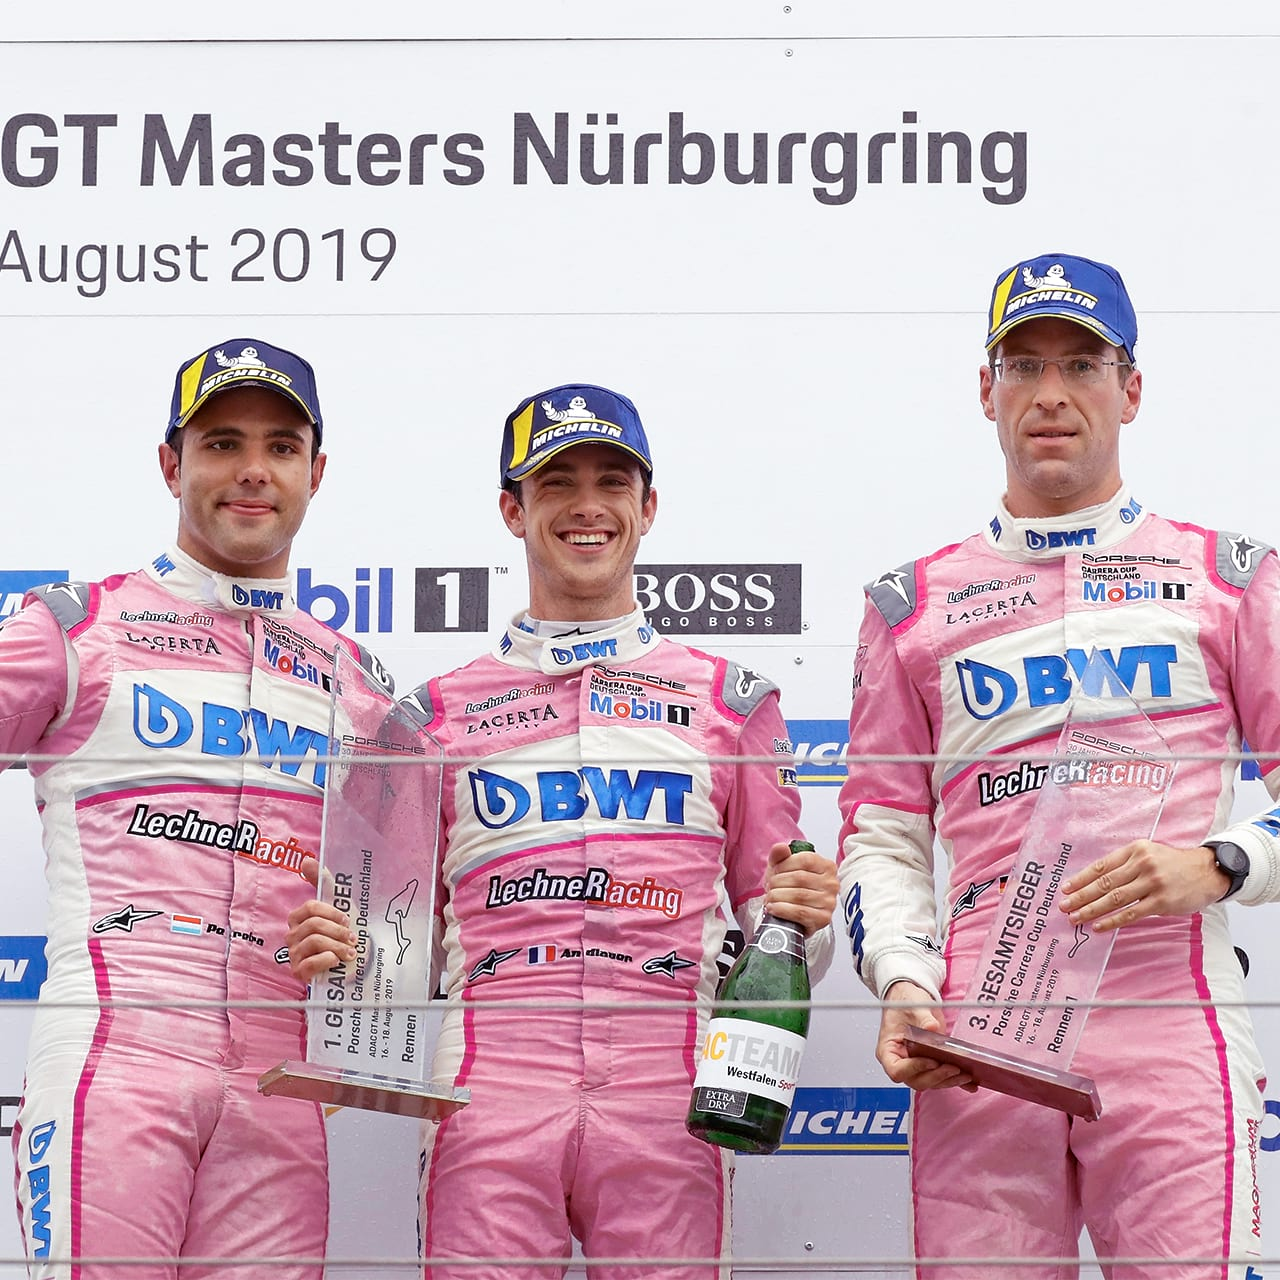 Nürburgring Podium